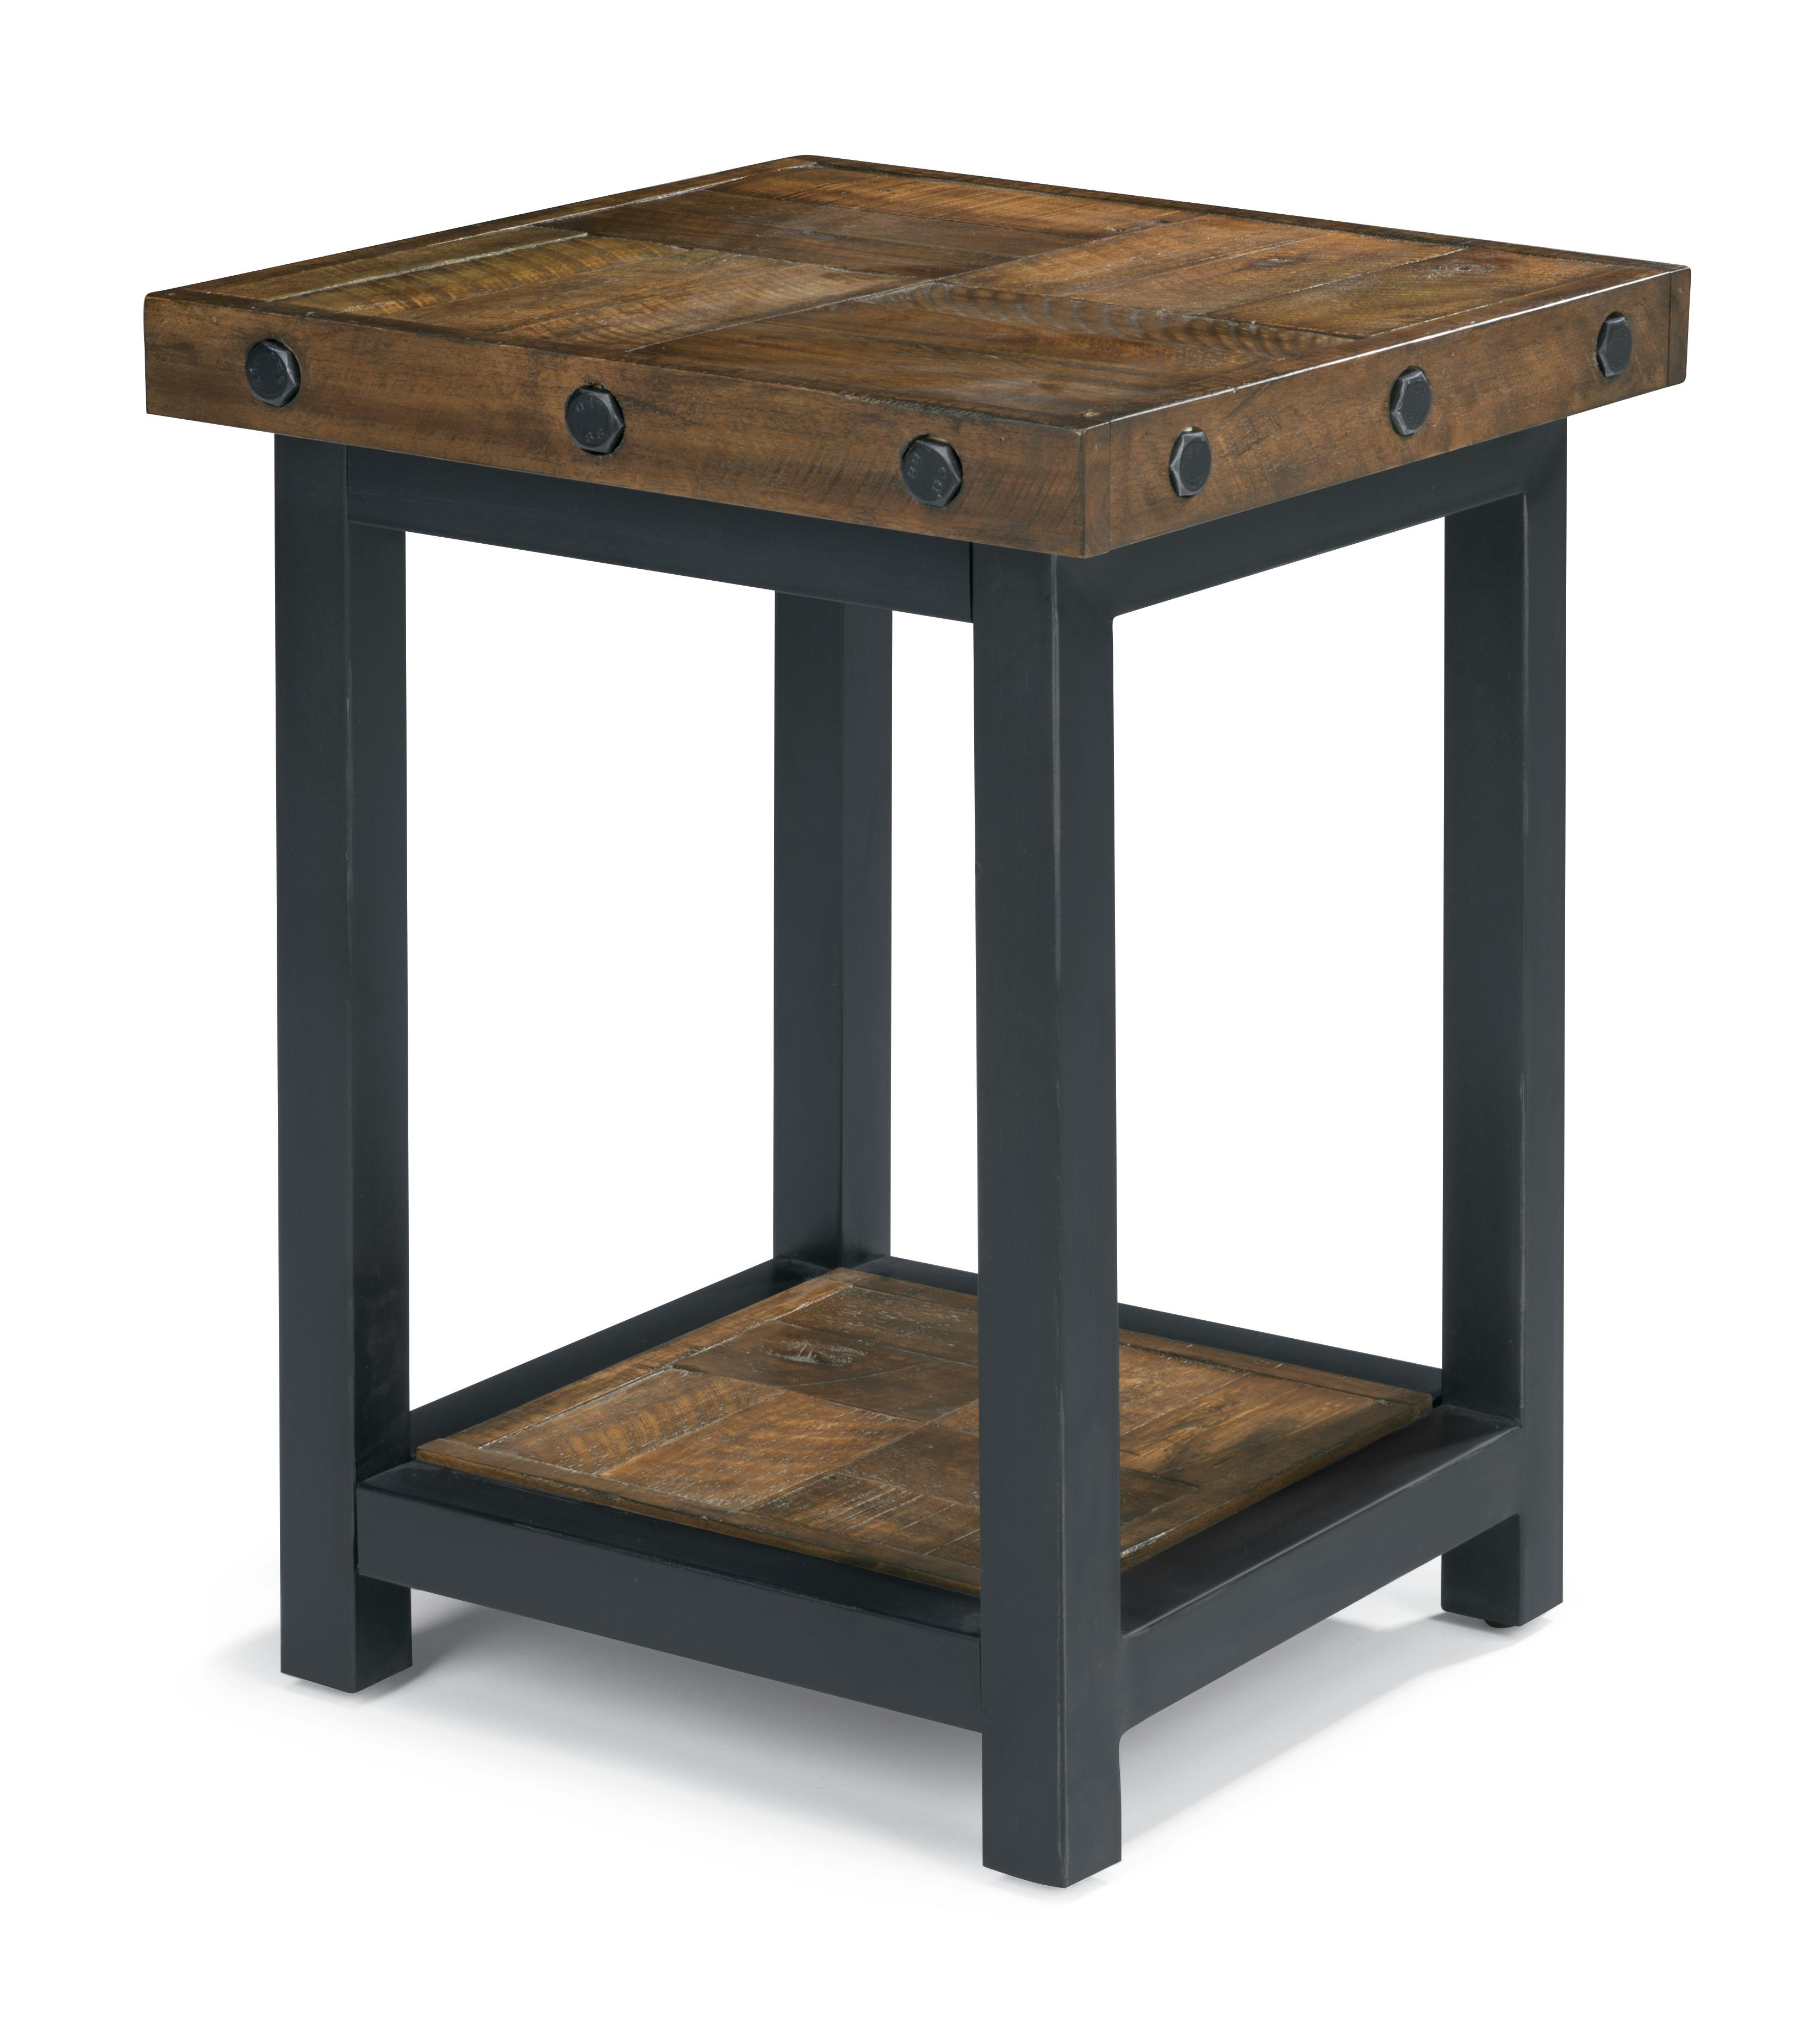 Flexsteel carpenter 6722 07 chair side table with square for Bright colored side tables